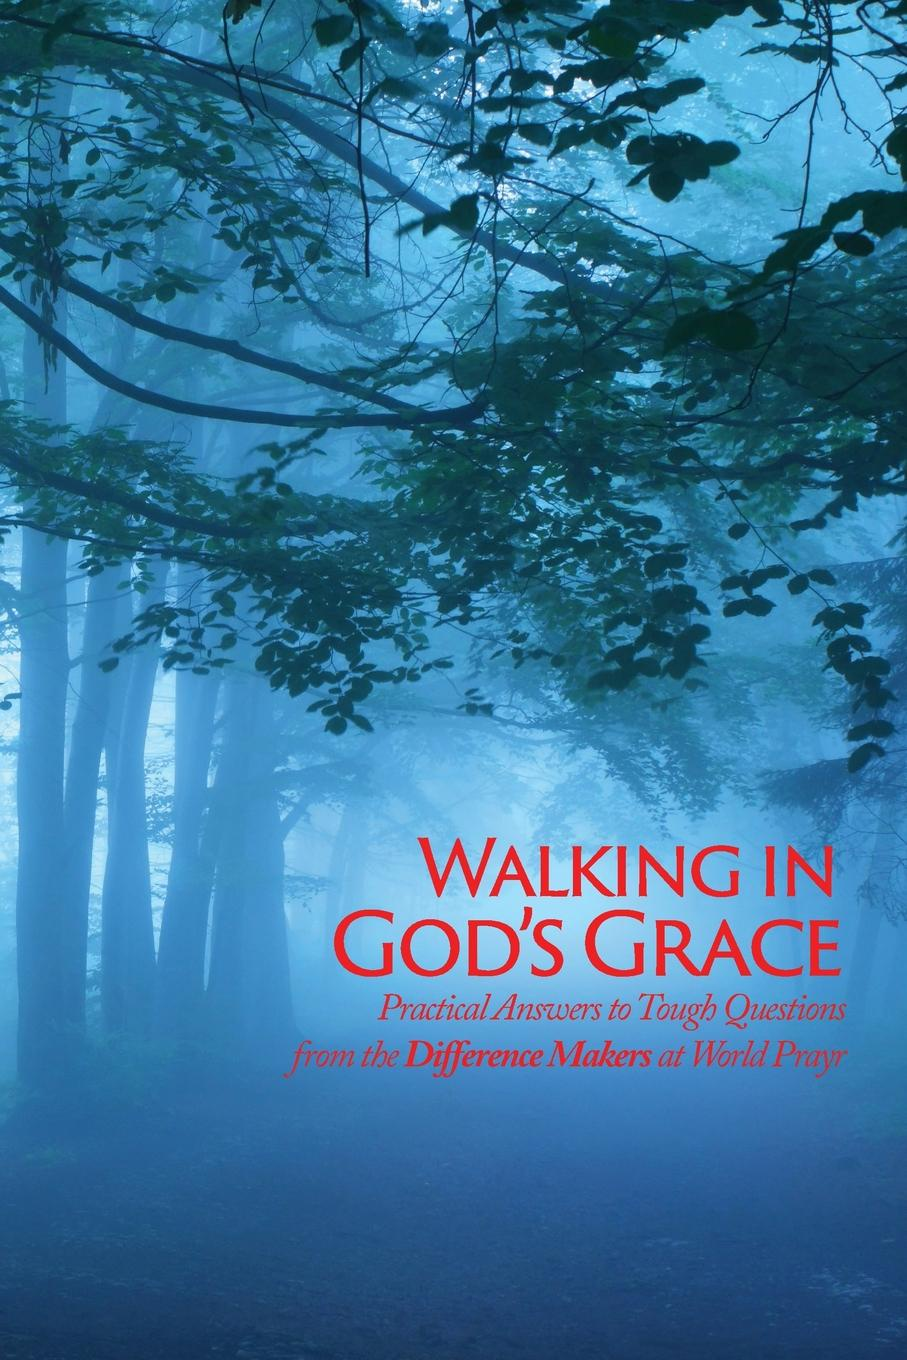 Inc World Prayr Walking in God.s Grace. Practical Answers to Tough Questions god is at work